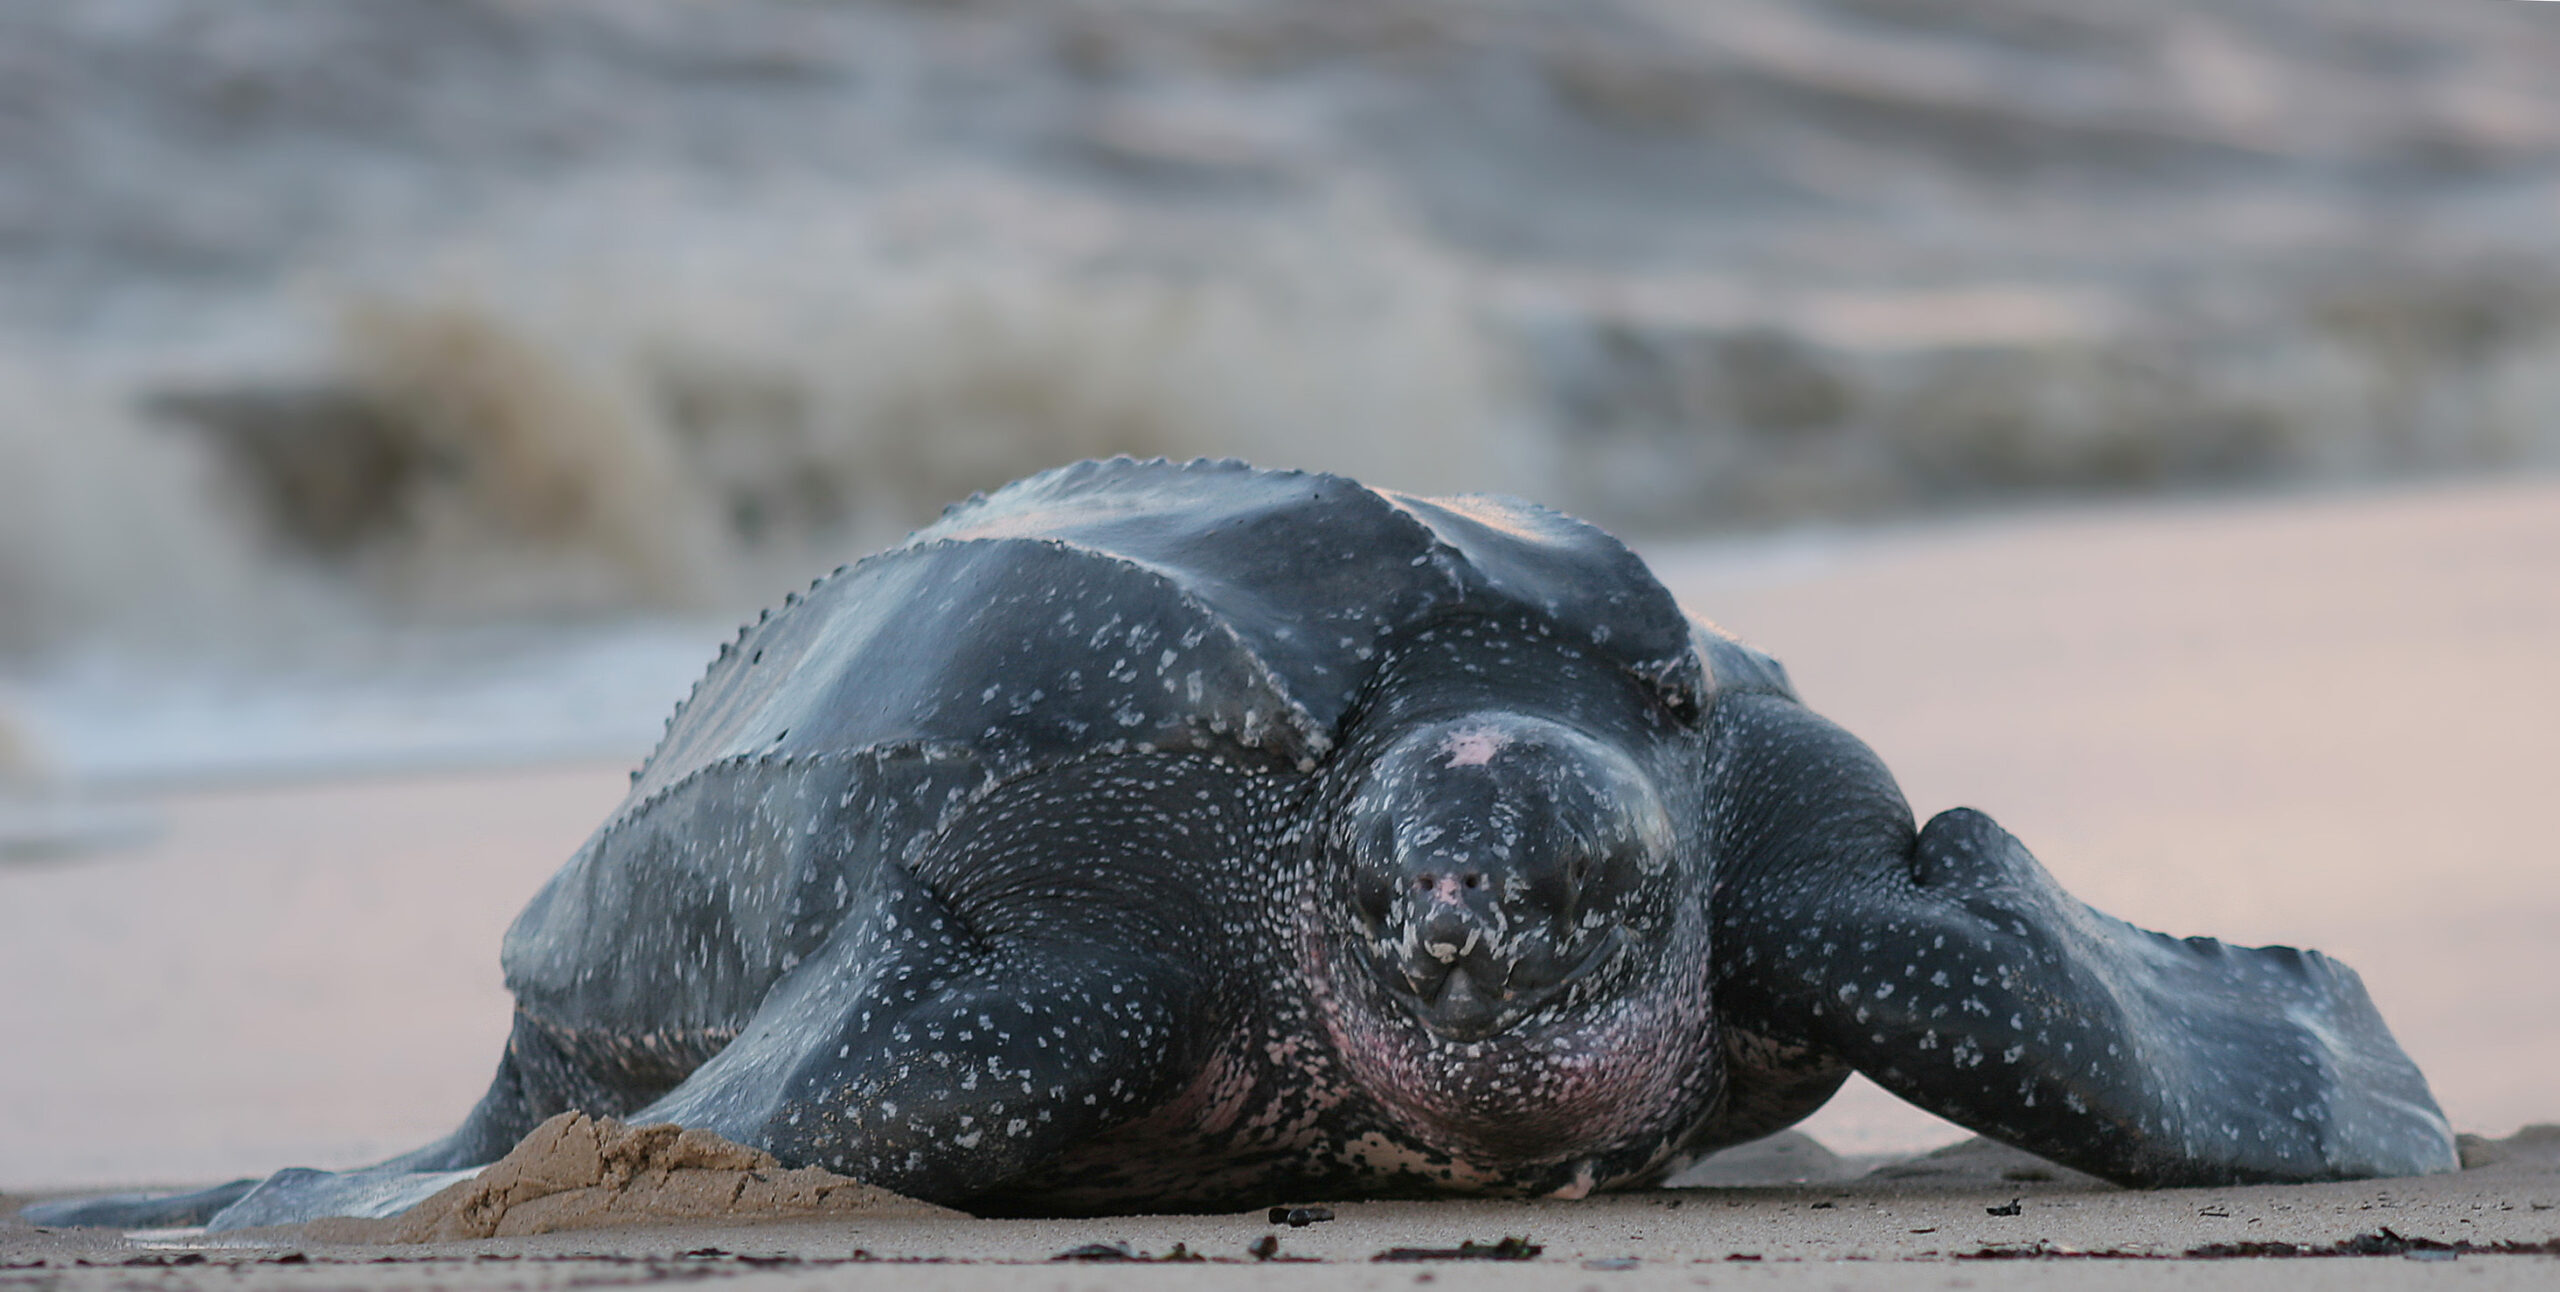 Americans Expressing Growing Support to Keep Protections for Marine National Monuments